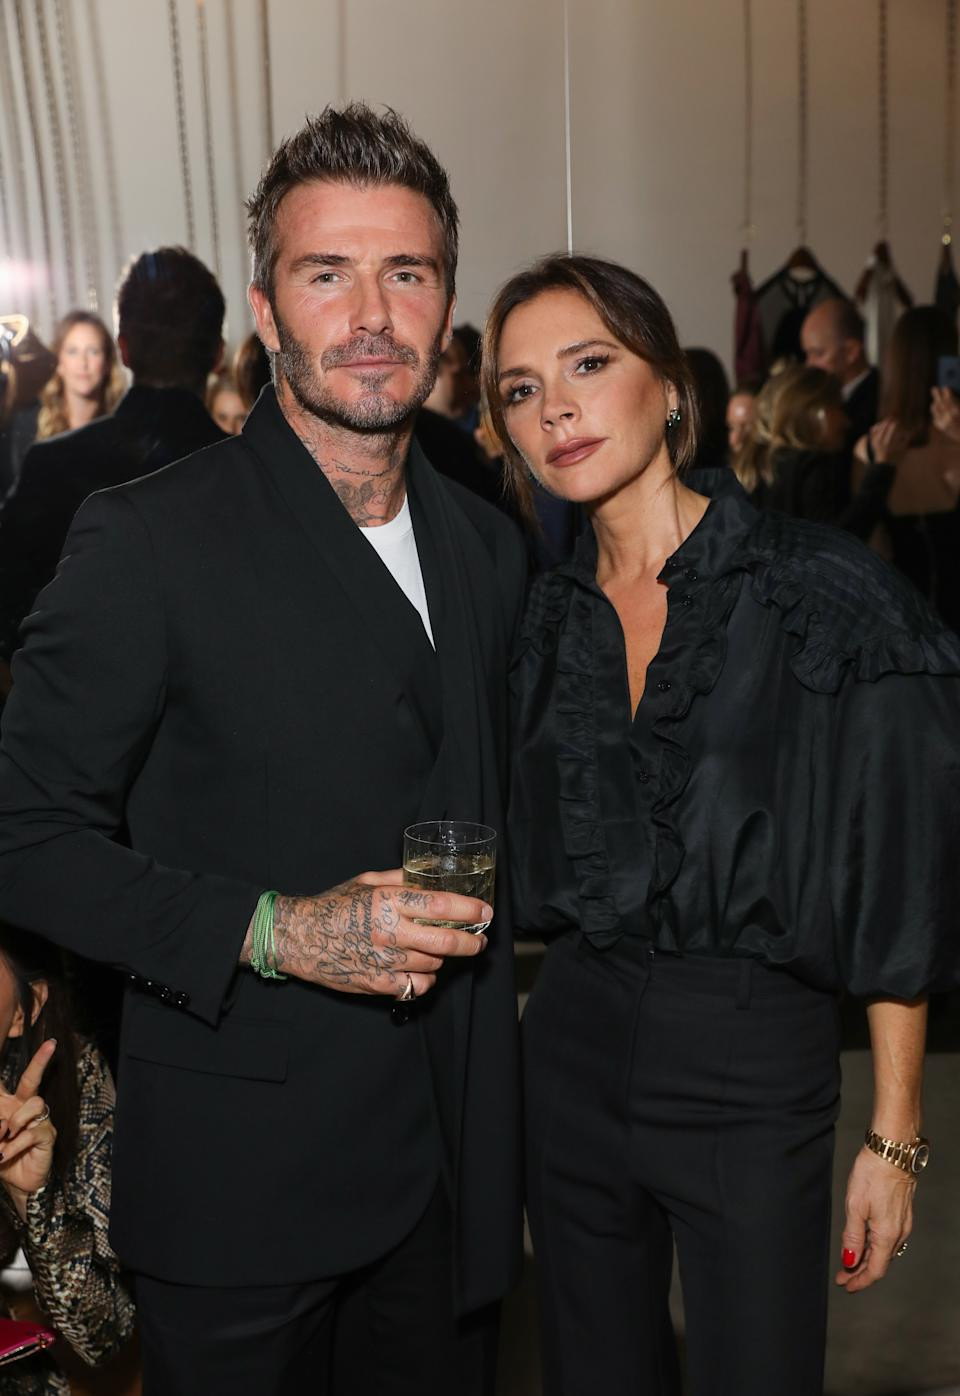 David and Victoria Beckham pose together at Victoria Beckham and Sotheby's celebration of Andy Warhol with Don Julio 1942 at her Dover Street store, on September 30, 2019 in London, England. (Photo by Darren Gerrish/WireImage for White Company)